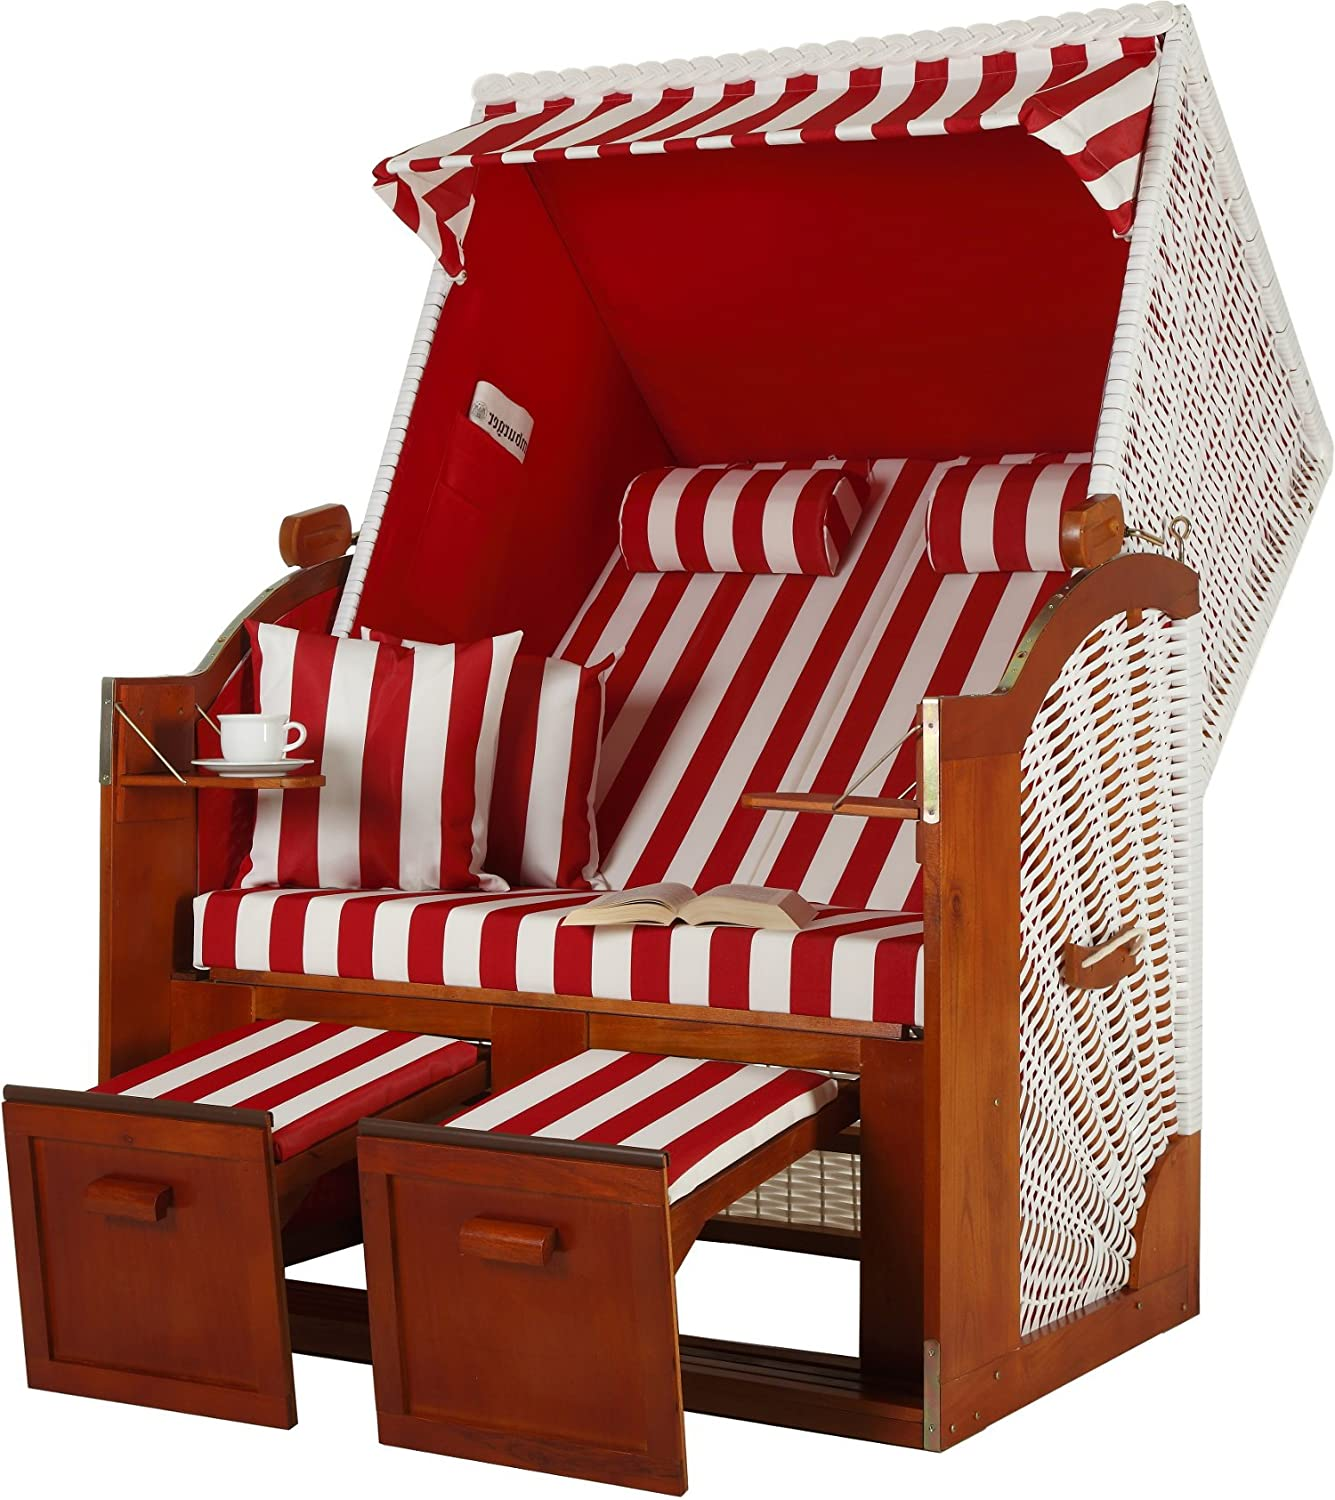 zweisitzer ostsee strandkorb modell rot gestreift. Black Bedroom Furniture Sets. Home Design Ideas